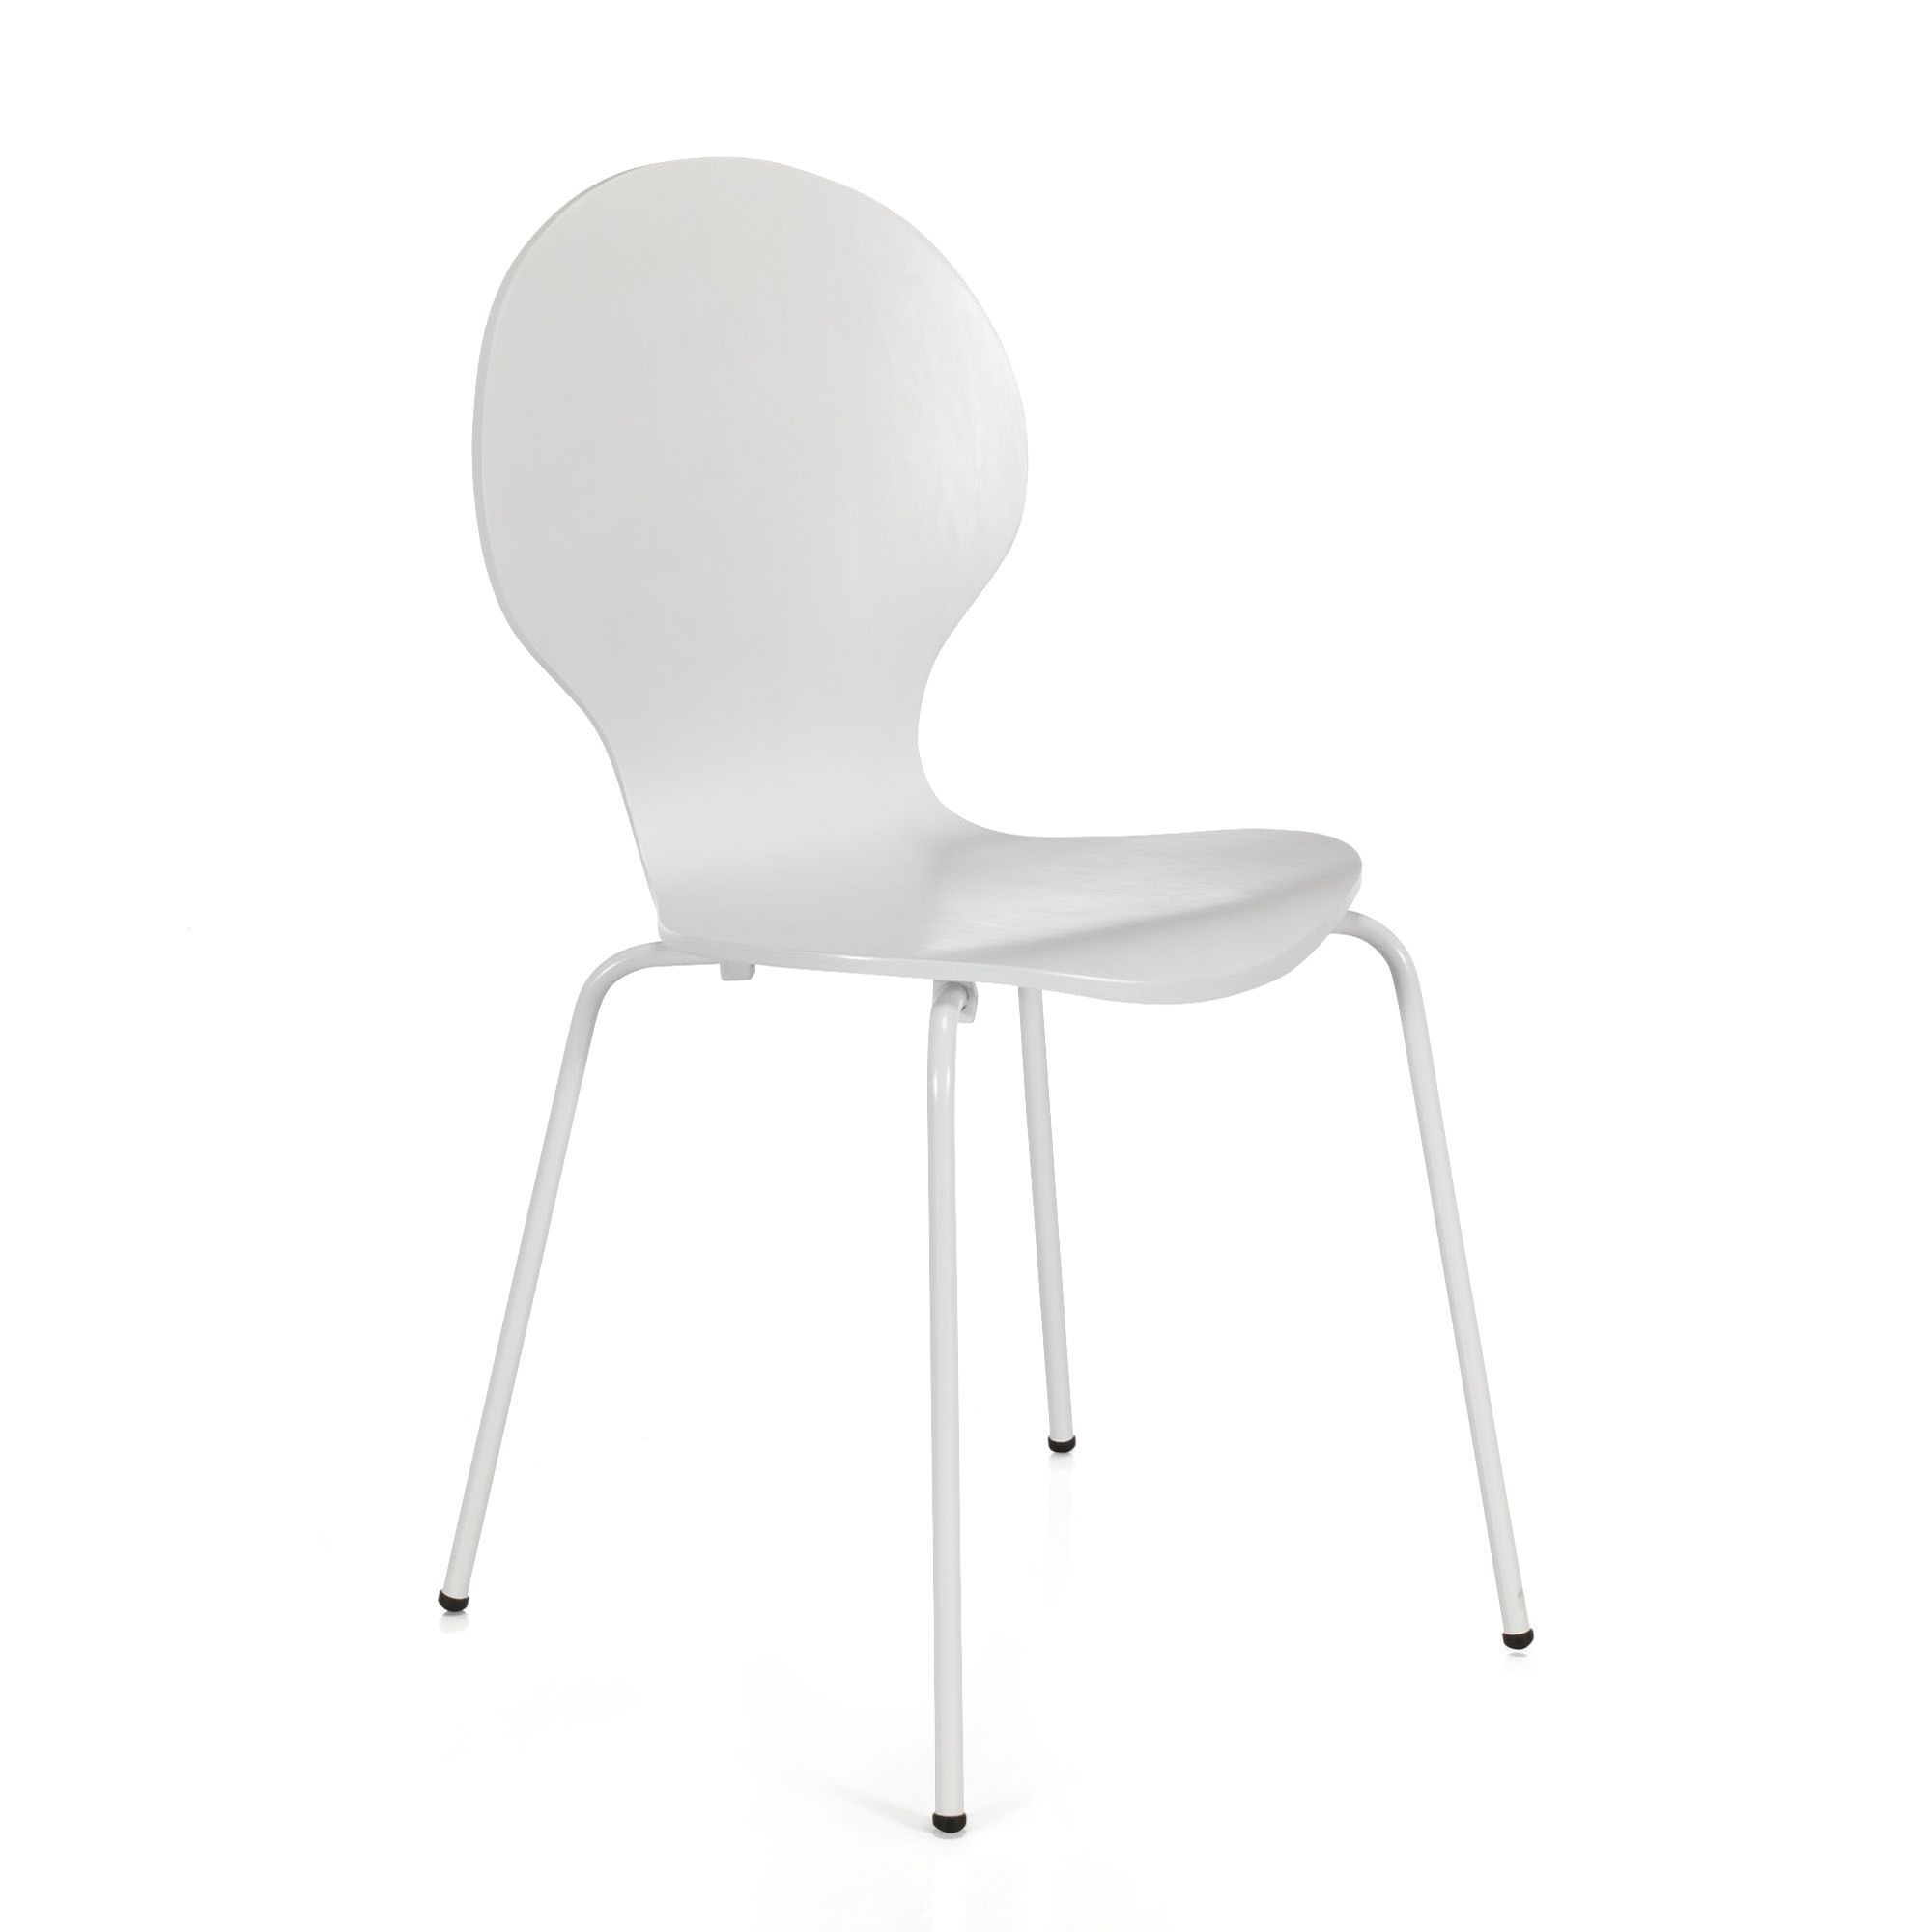 Chaise De Salon Blanche Chaise Blanche Rétro Maddy Chaises Tables Chaises Salon